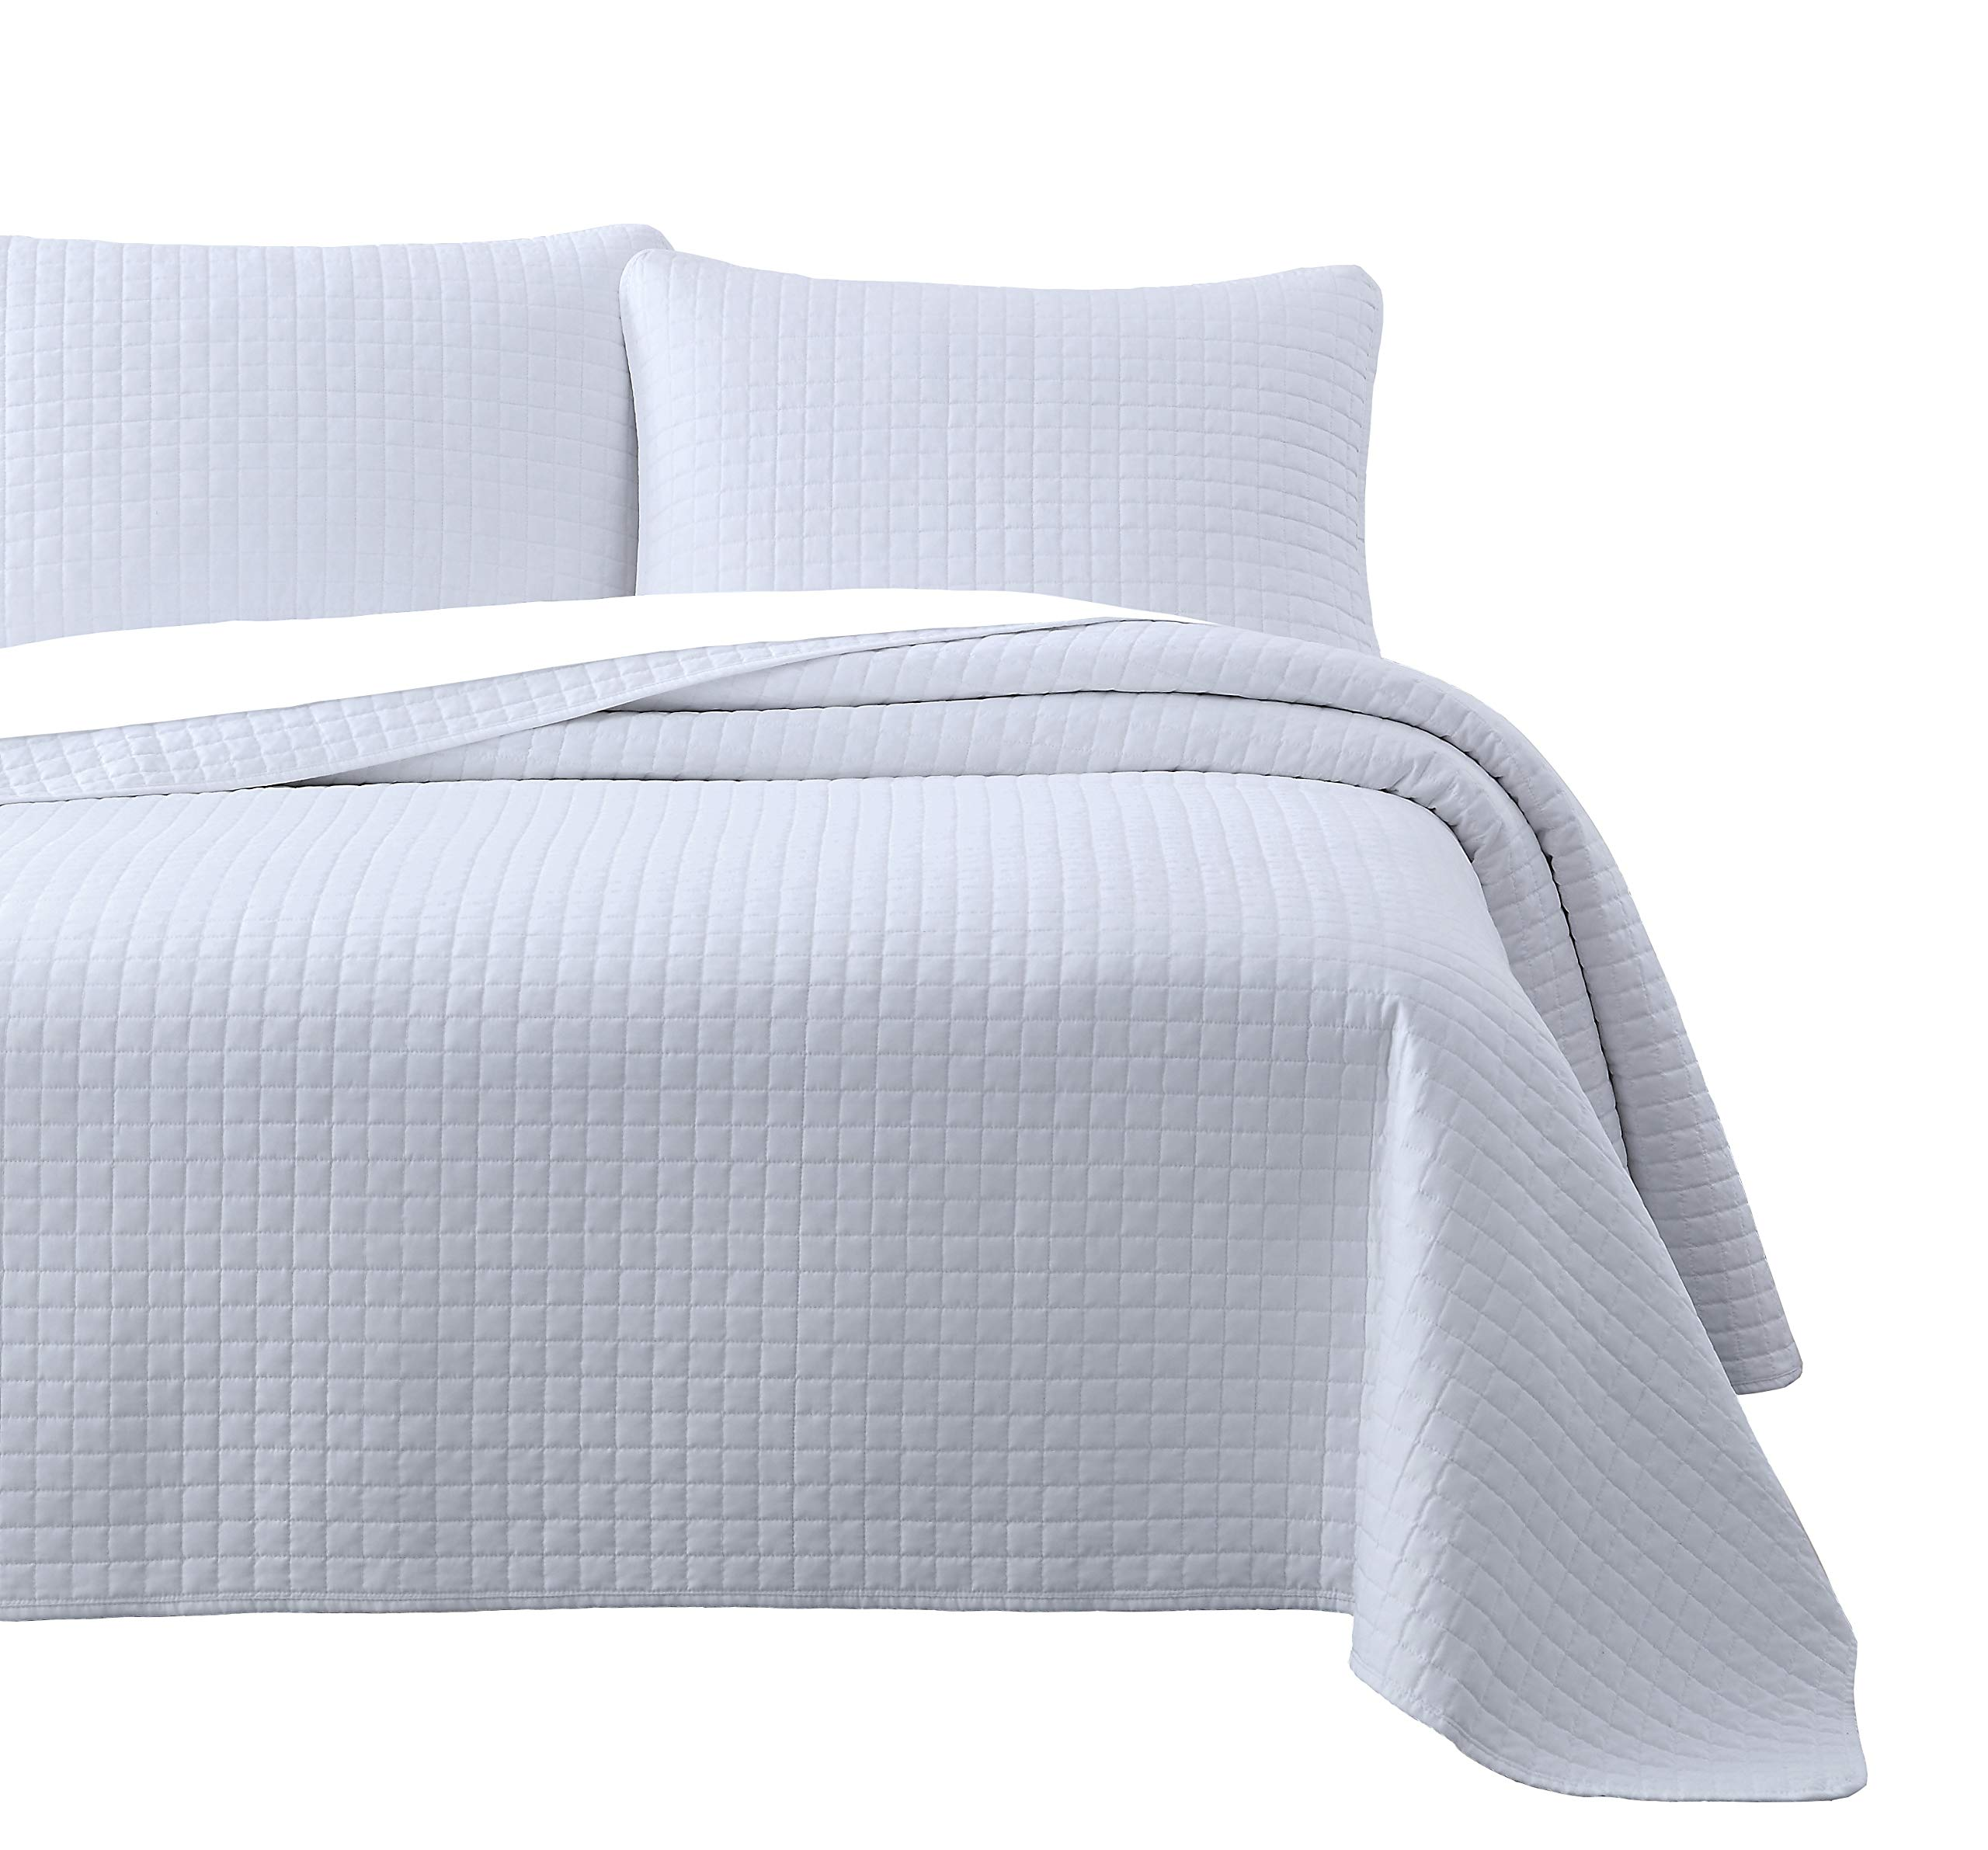 Attitude 3pc Quilted Coverlet Set White King/Cal-King Size (108''x96'') Prewashed Cover Set, Square Stitched Design, Soft to The Touch Texture Microfabric Shell 100% Cotton Bed Cover by Cozy Beddings